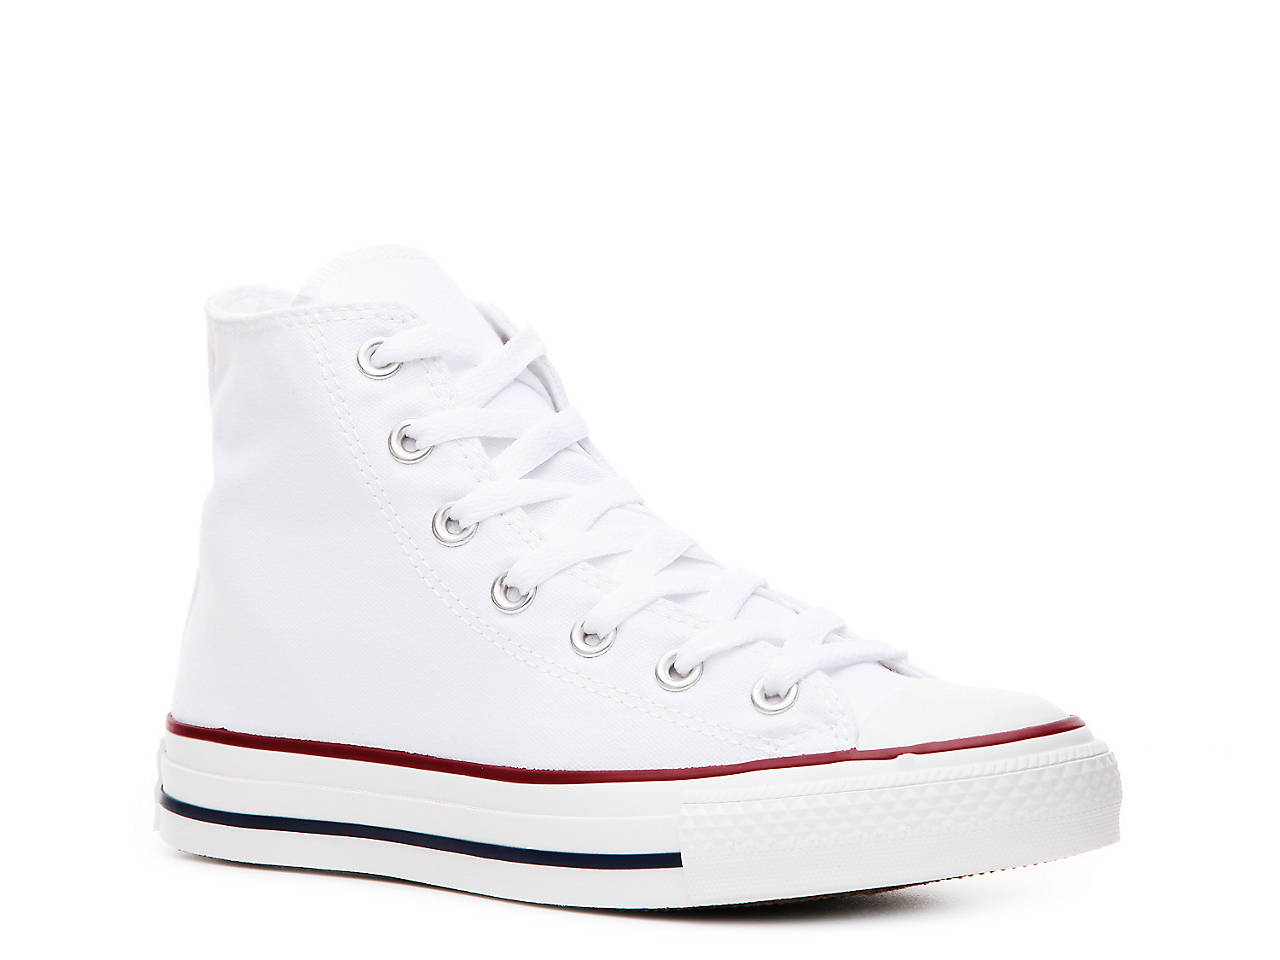 24dfe0ce4f86 Converse Chuck Taylor All Star High-Top Sneaker - Women s Women s ...